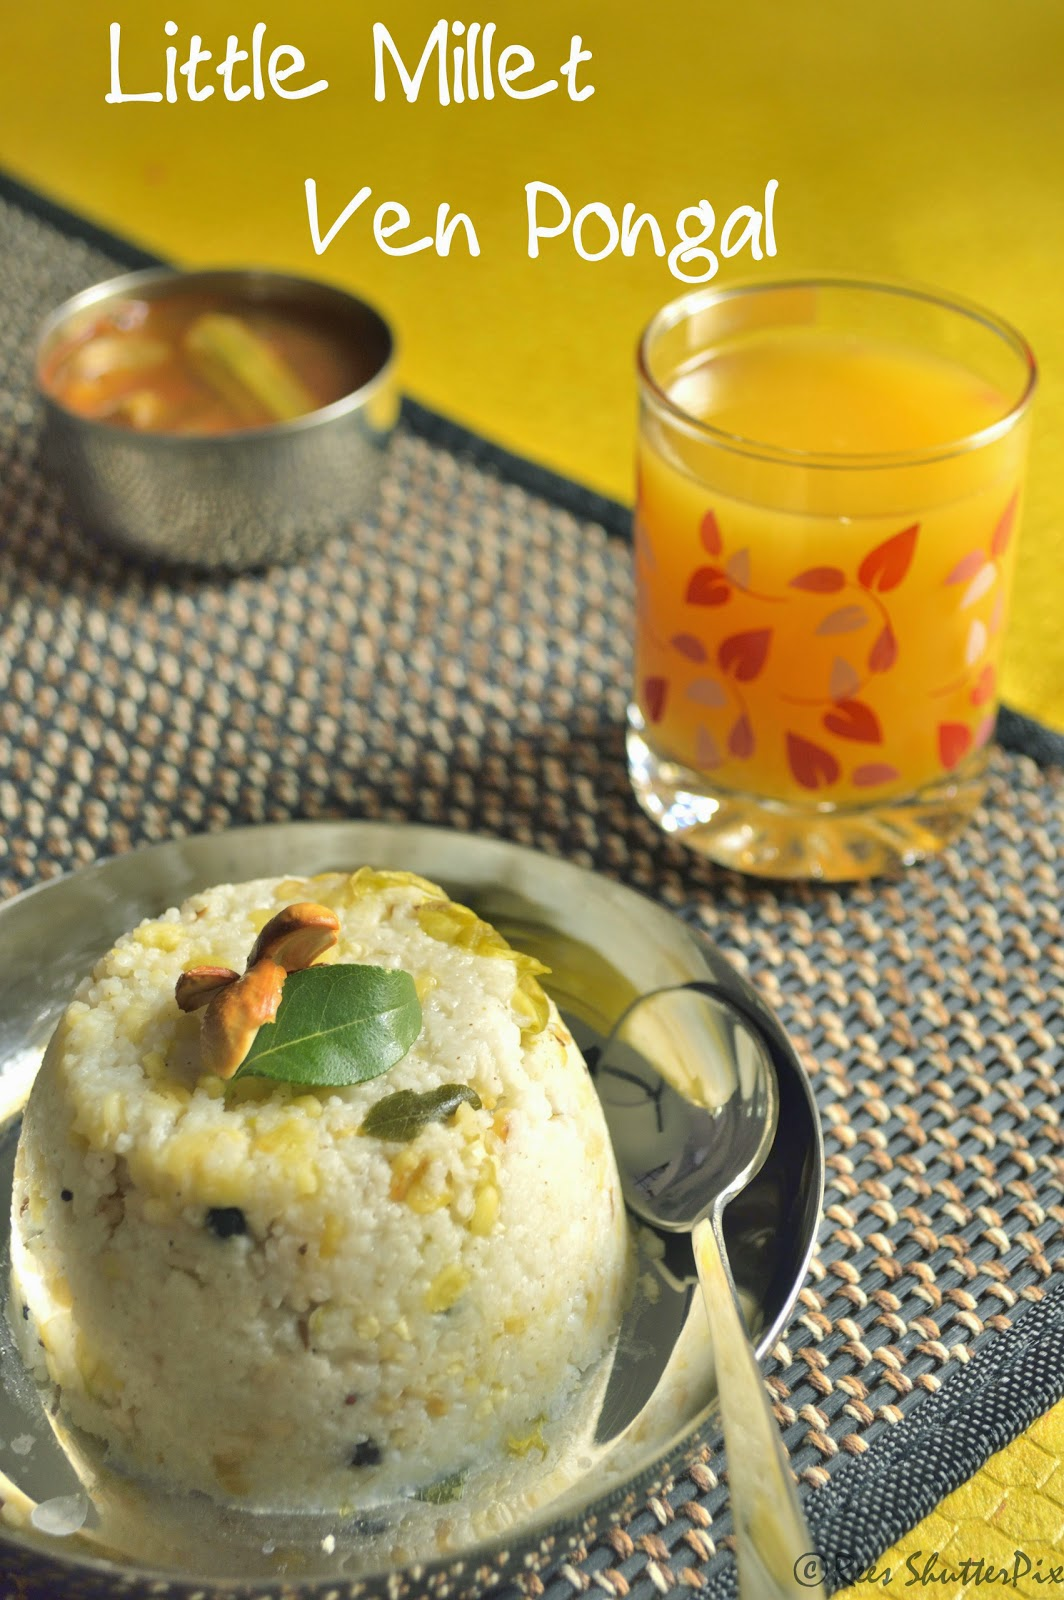 samai ven pongal recipe, little millet ven pongal recipe, Breakfast Recipes, easy millet recipe, Millet Recipes, Little Millet Recipes, ven pongal recipe with sambhar and vadai,easy ven pongal recipe, Healthy Recipes,